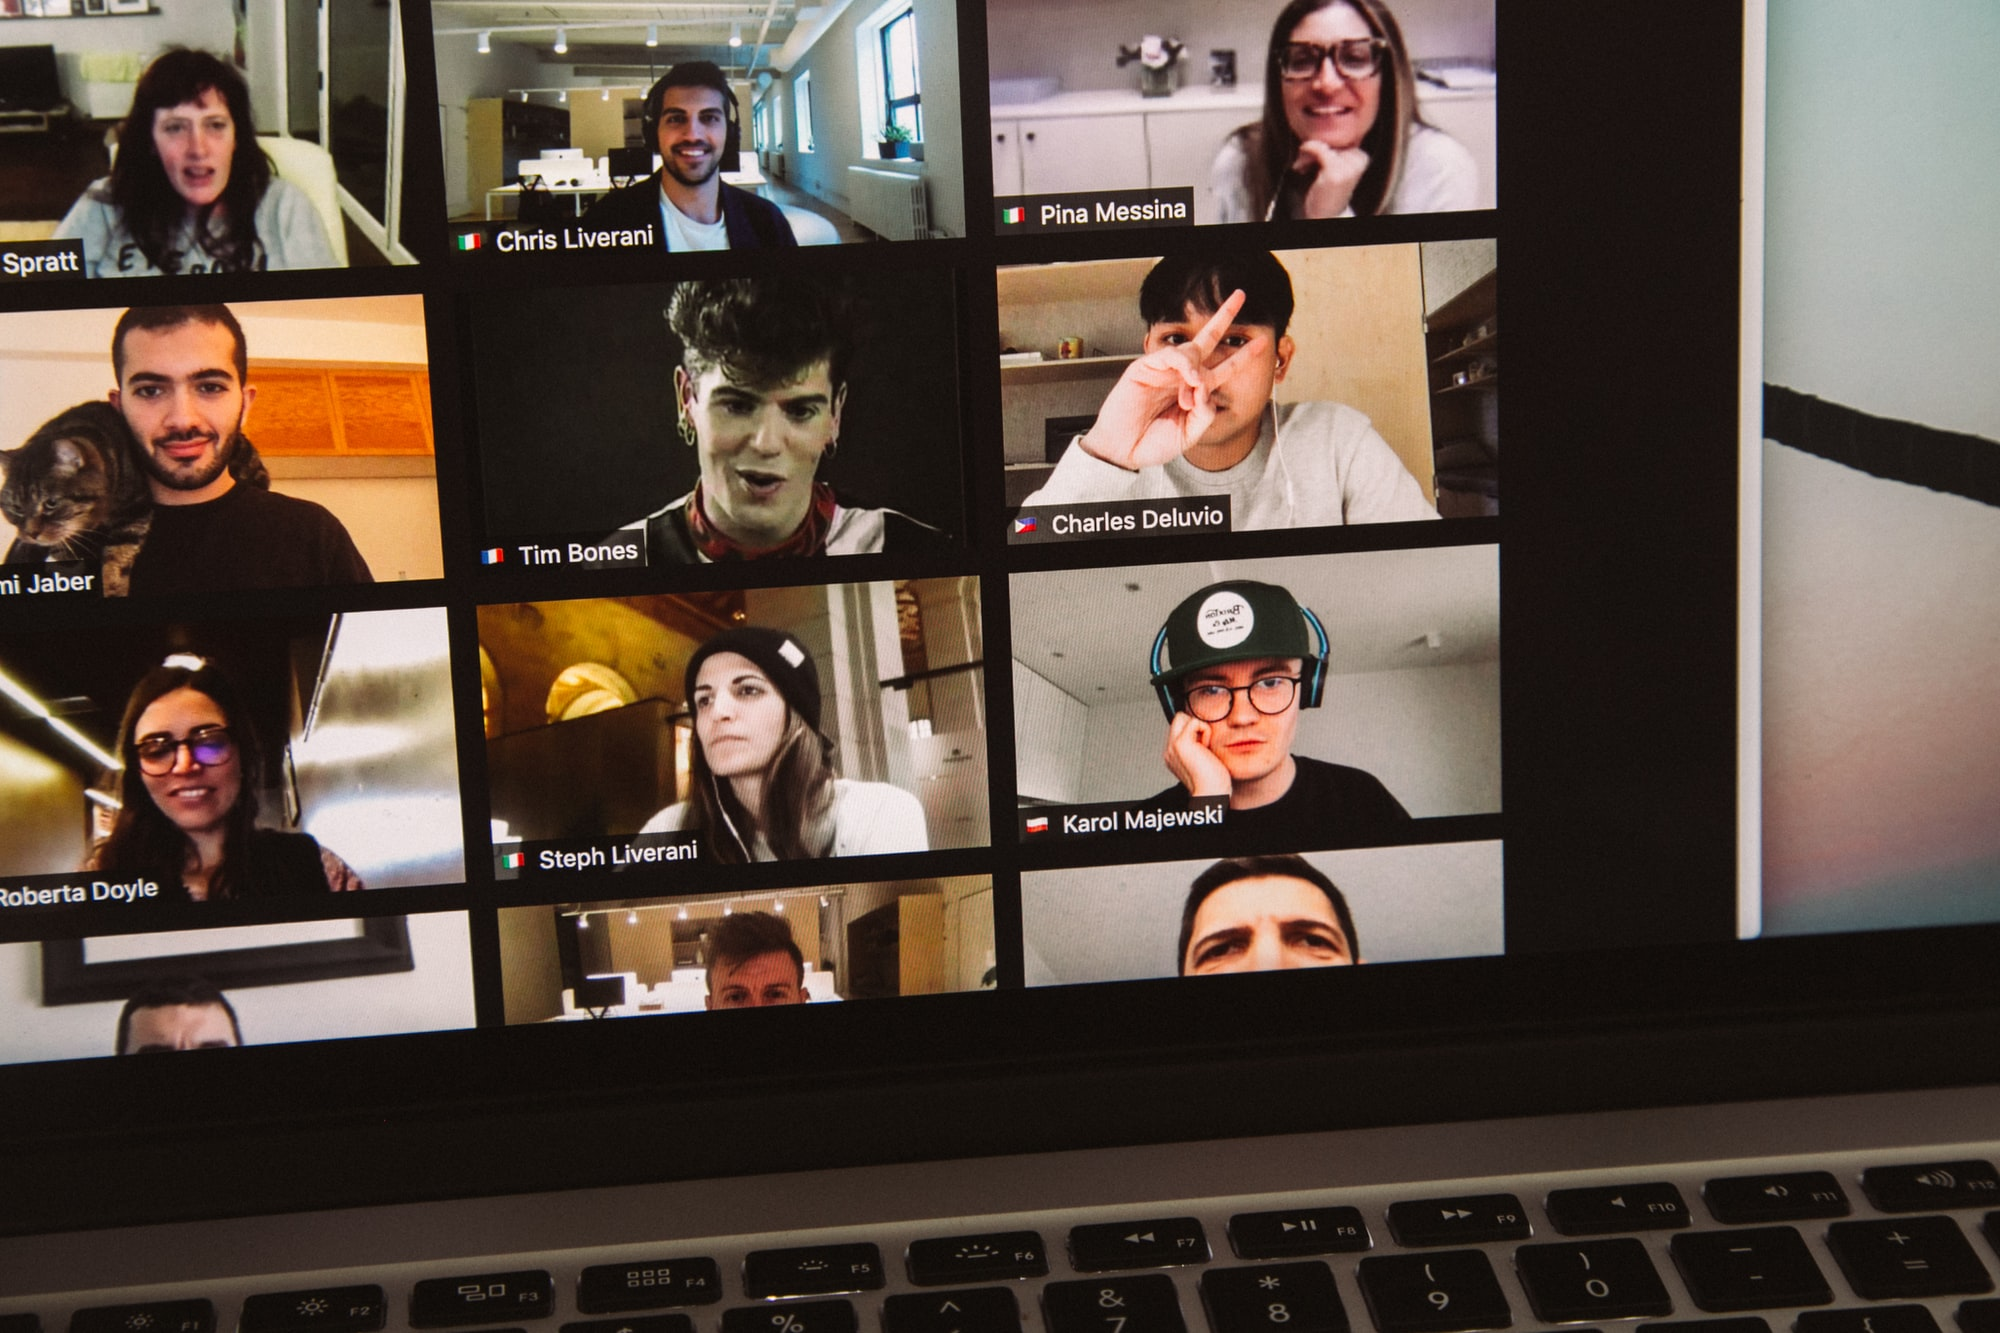 10 rules for surviving (Zoom) video calls